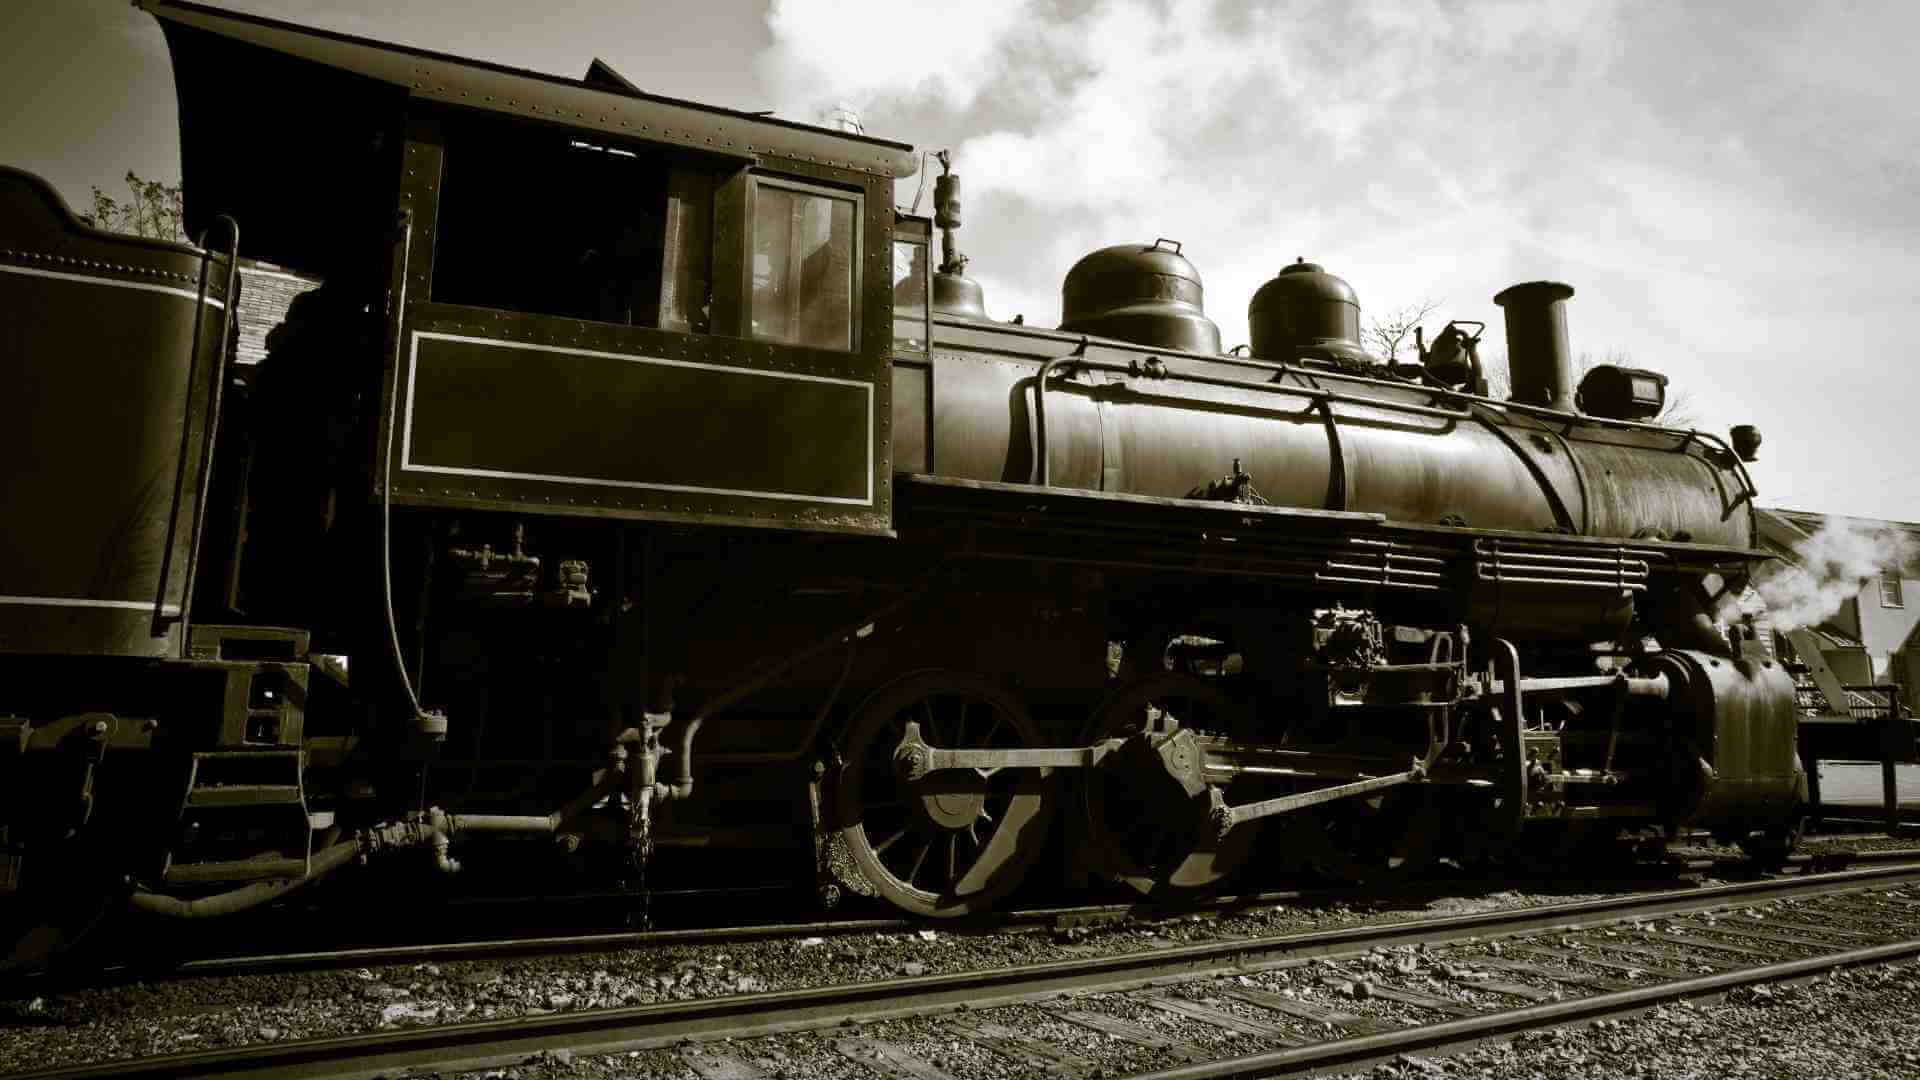 An image of a steam engine on the railroad tracks sets the scene for Disunion Station